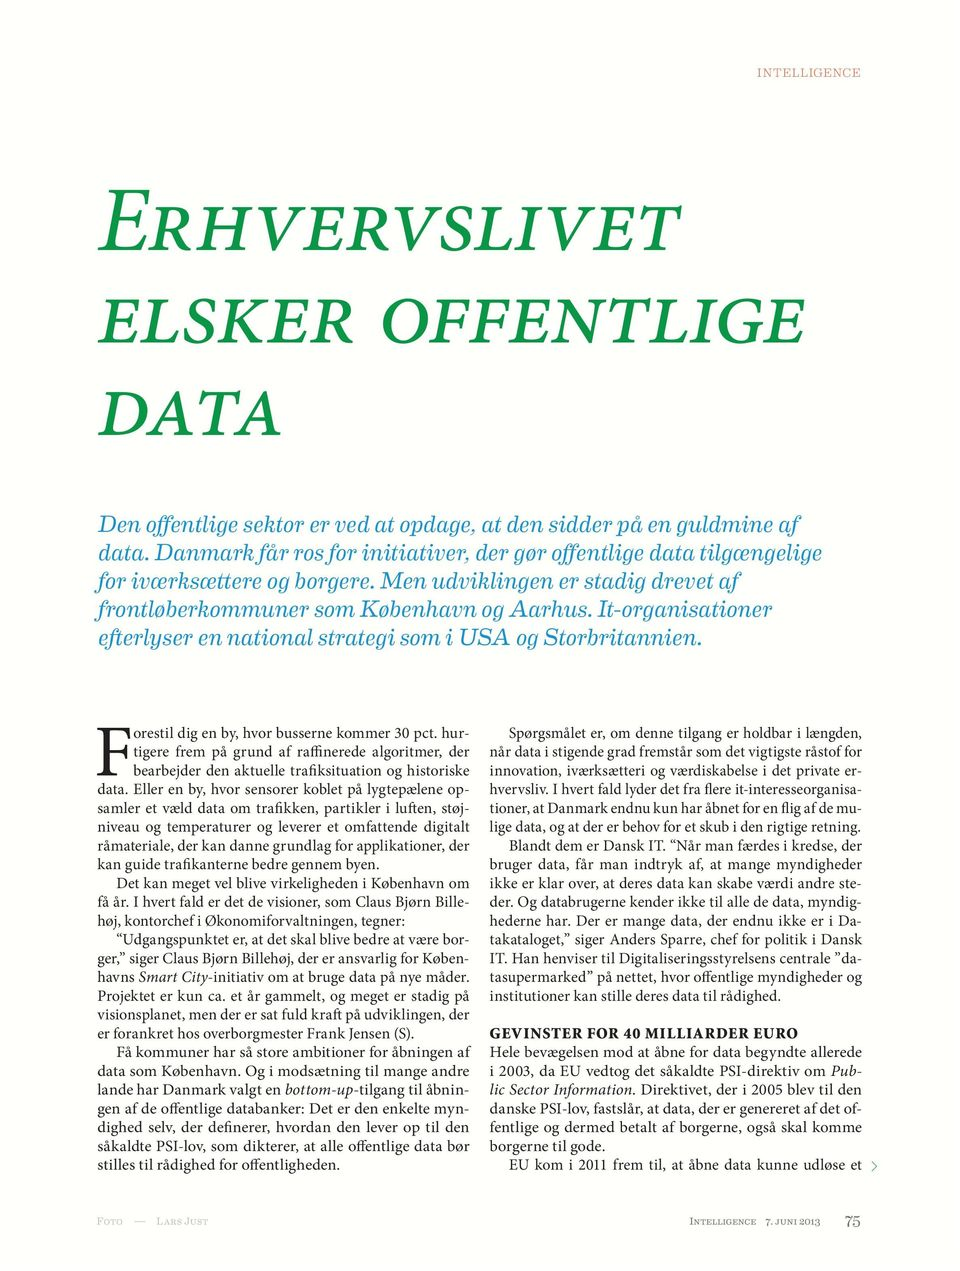 It-organisationer efterlyser en national strategi som i USA og Storbritannien. Forestil dig en by, hvor busserne kommer 30 pct.